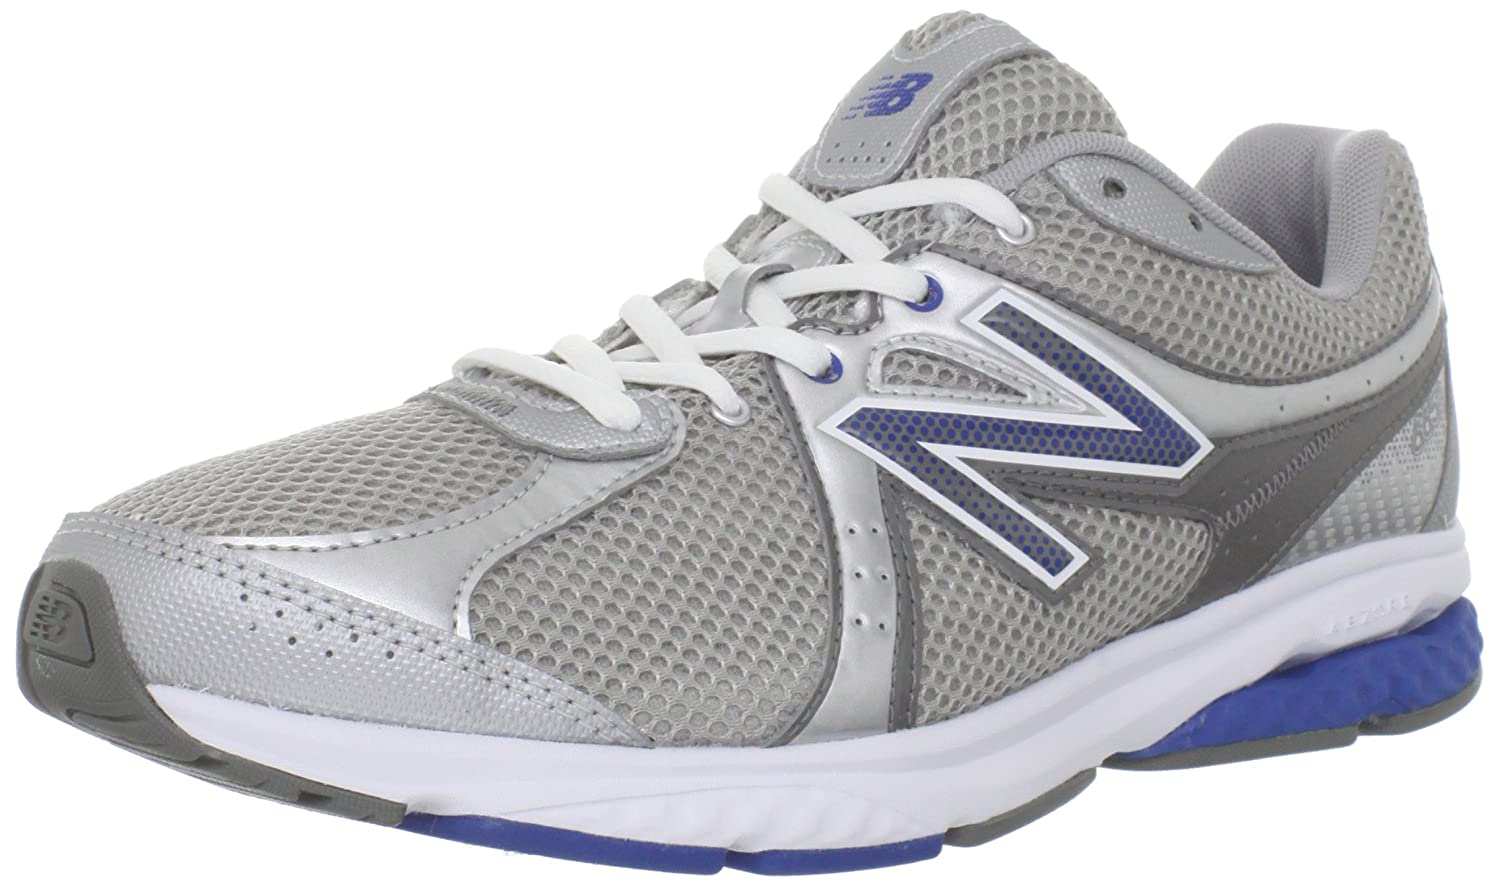 New Balance 665 Walking Sko Menns I8U91